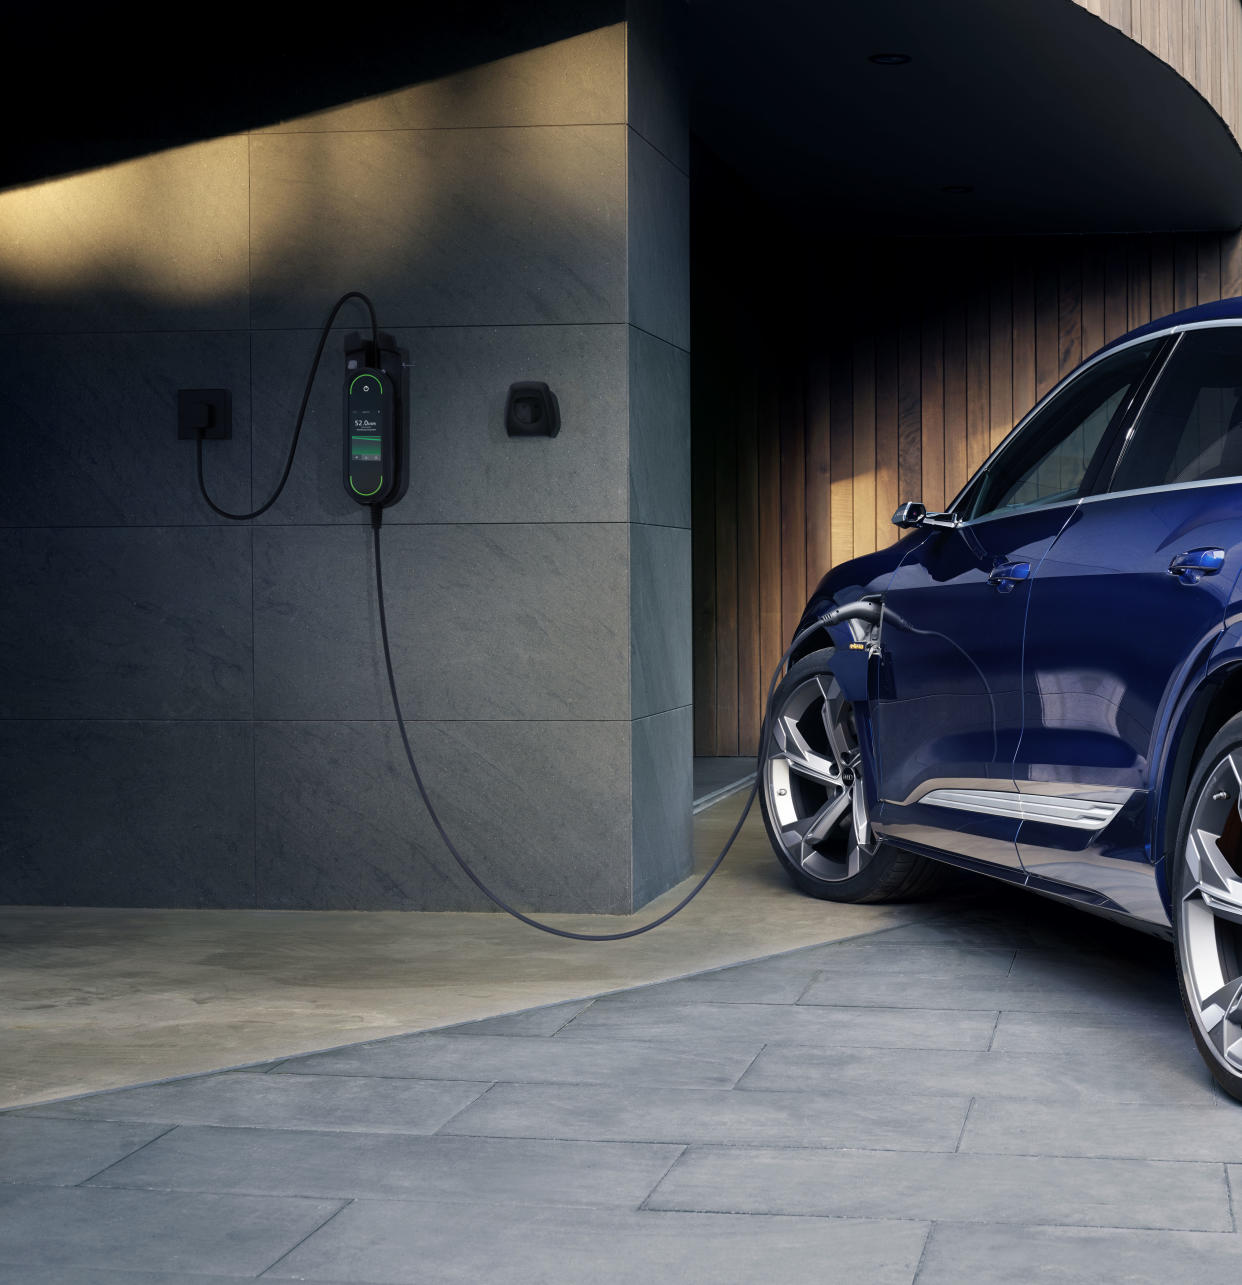 Audi e-tron: Electric vehicle charging